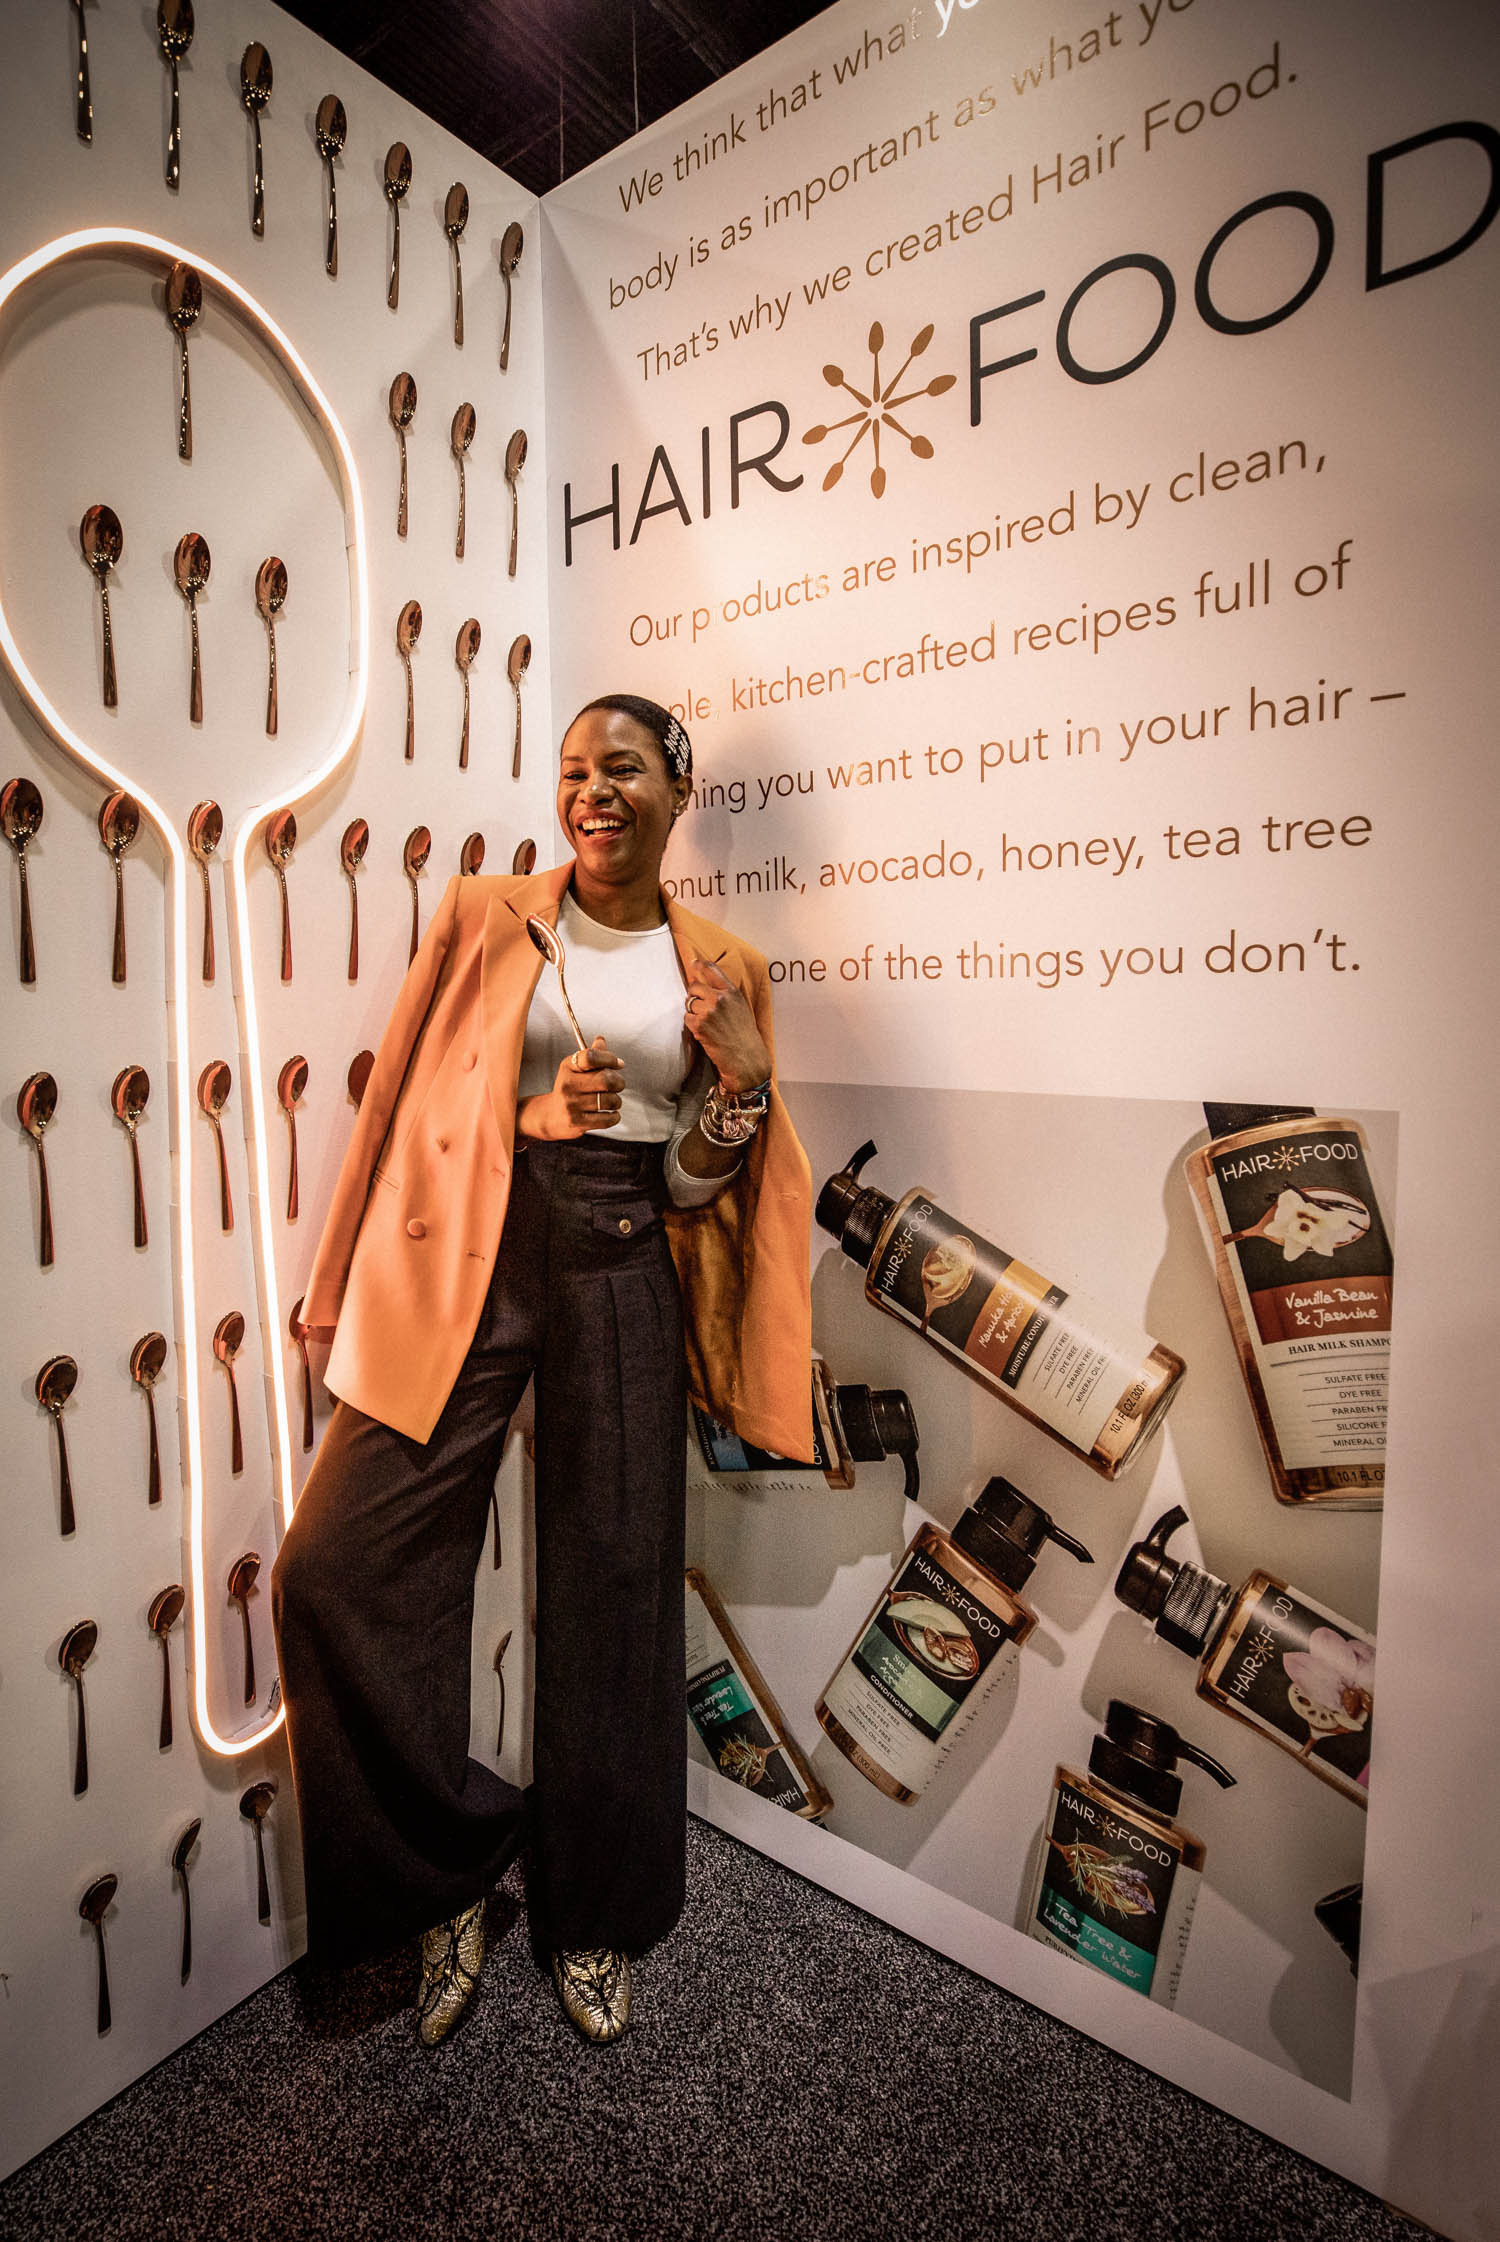 Atlanta fashion blogger Monica Awe-Etuk uses hair food products inspired by super foods like coconut, at the ulta gm conference in atlanta